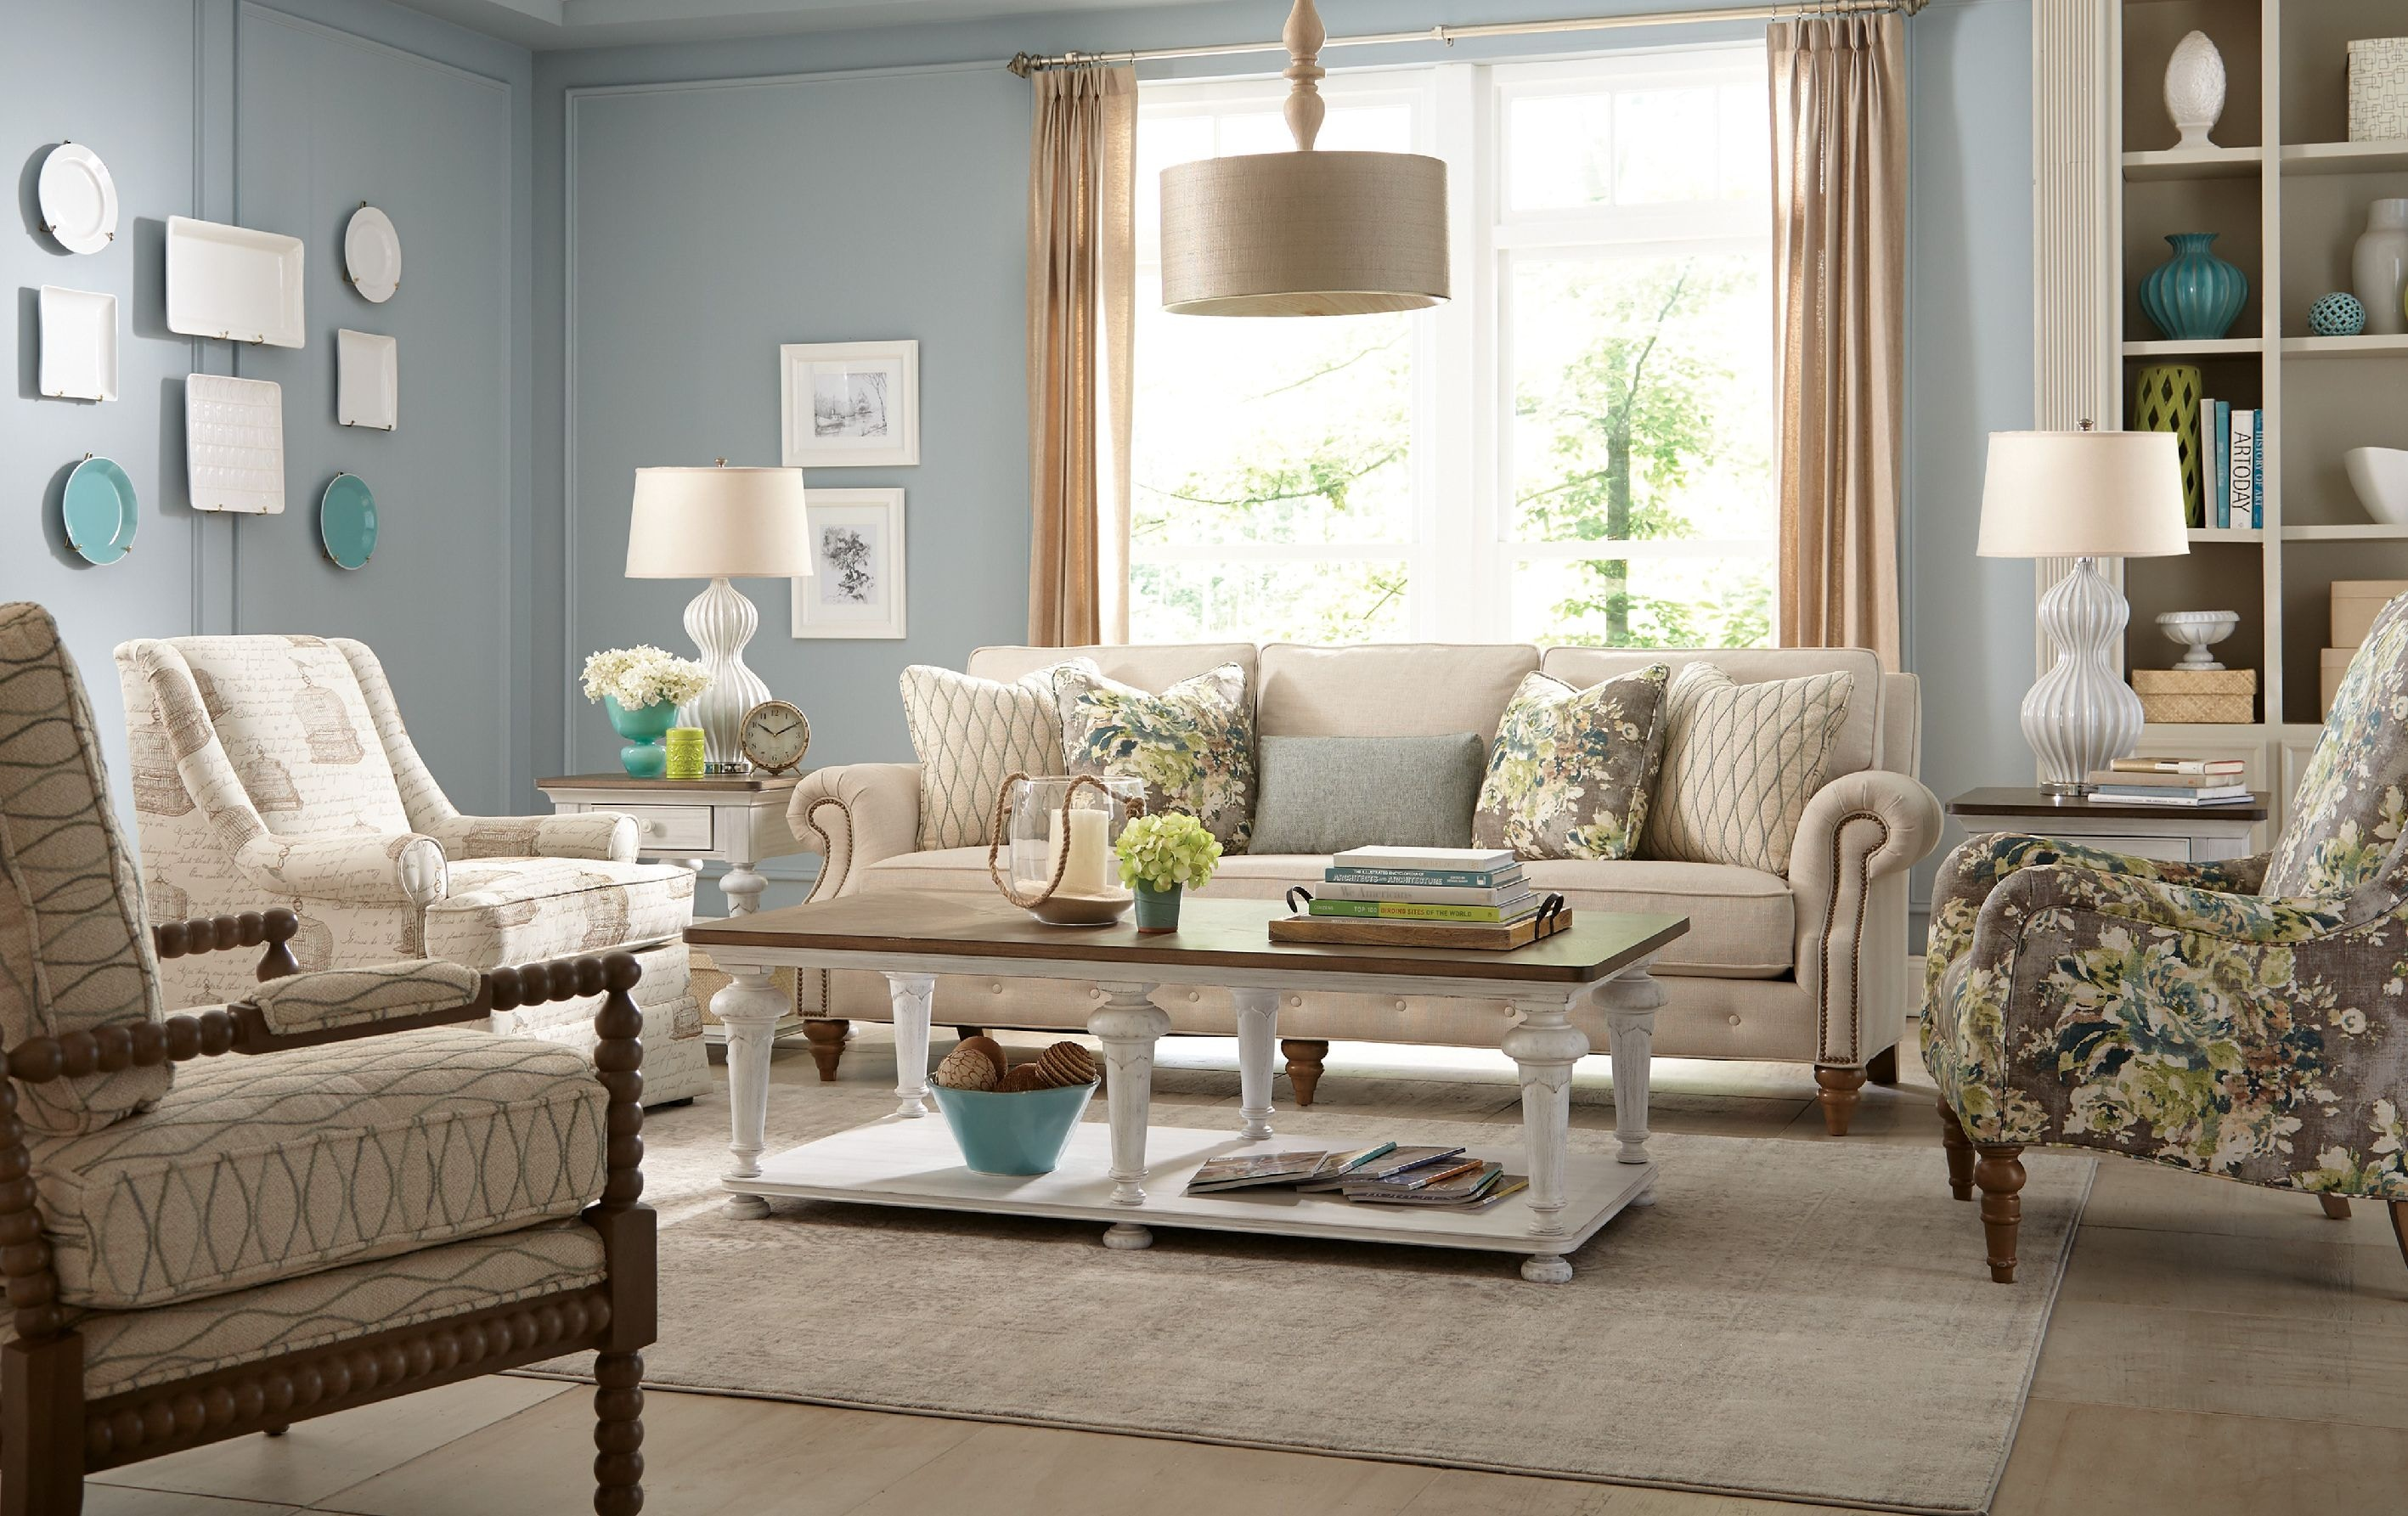 Paula deen by craftmaster living room sofa p763250bd craftmaster hiddenite nc for Paula deen living room furniture